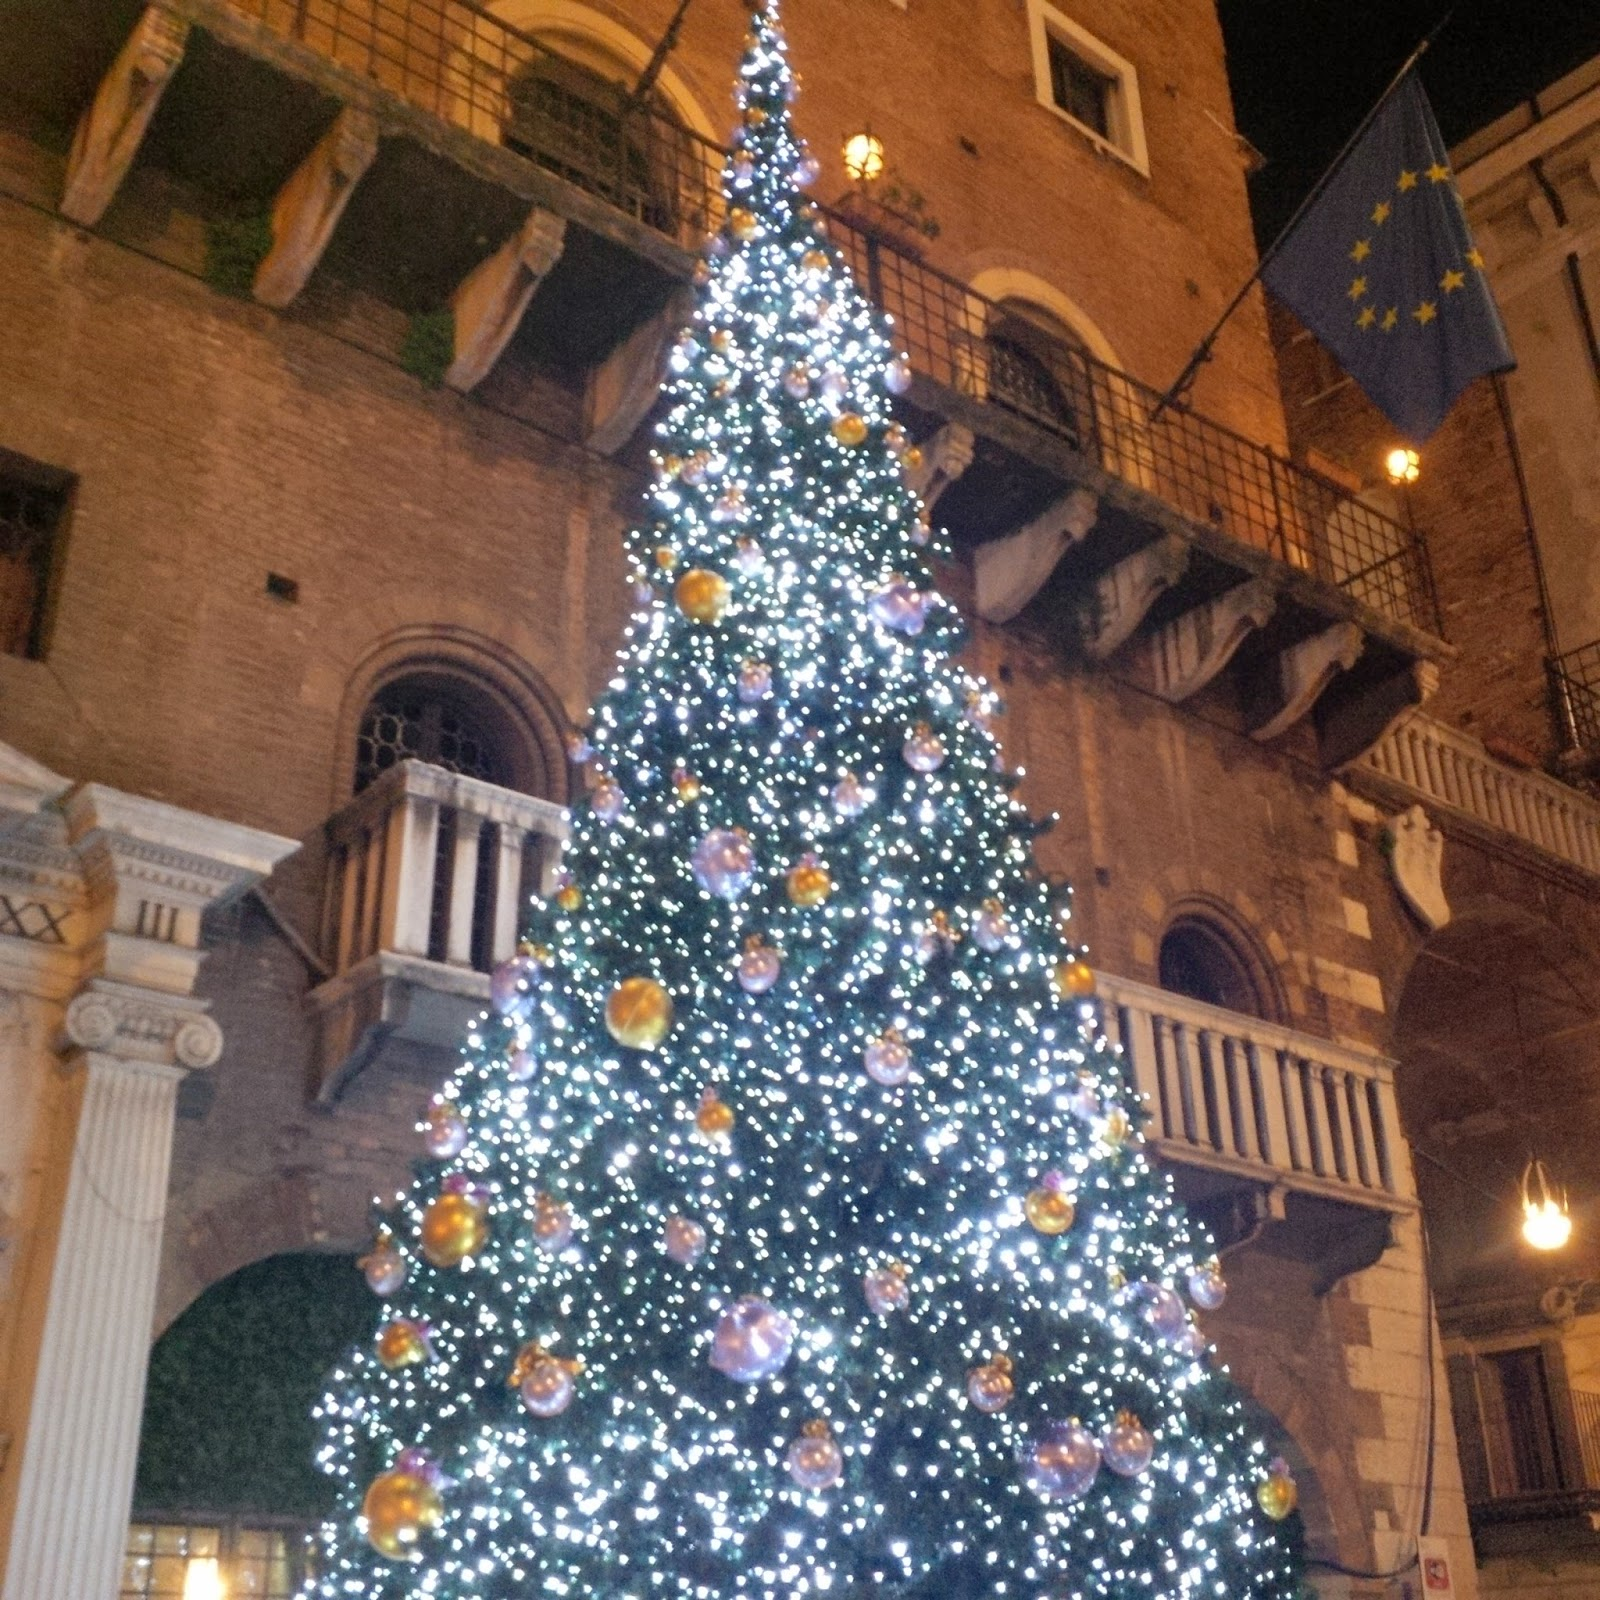 A sparkling Christmas tree at the Christmas market in Verona